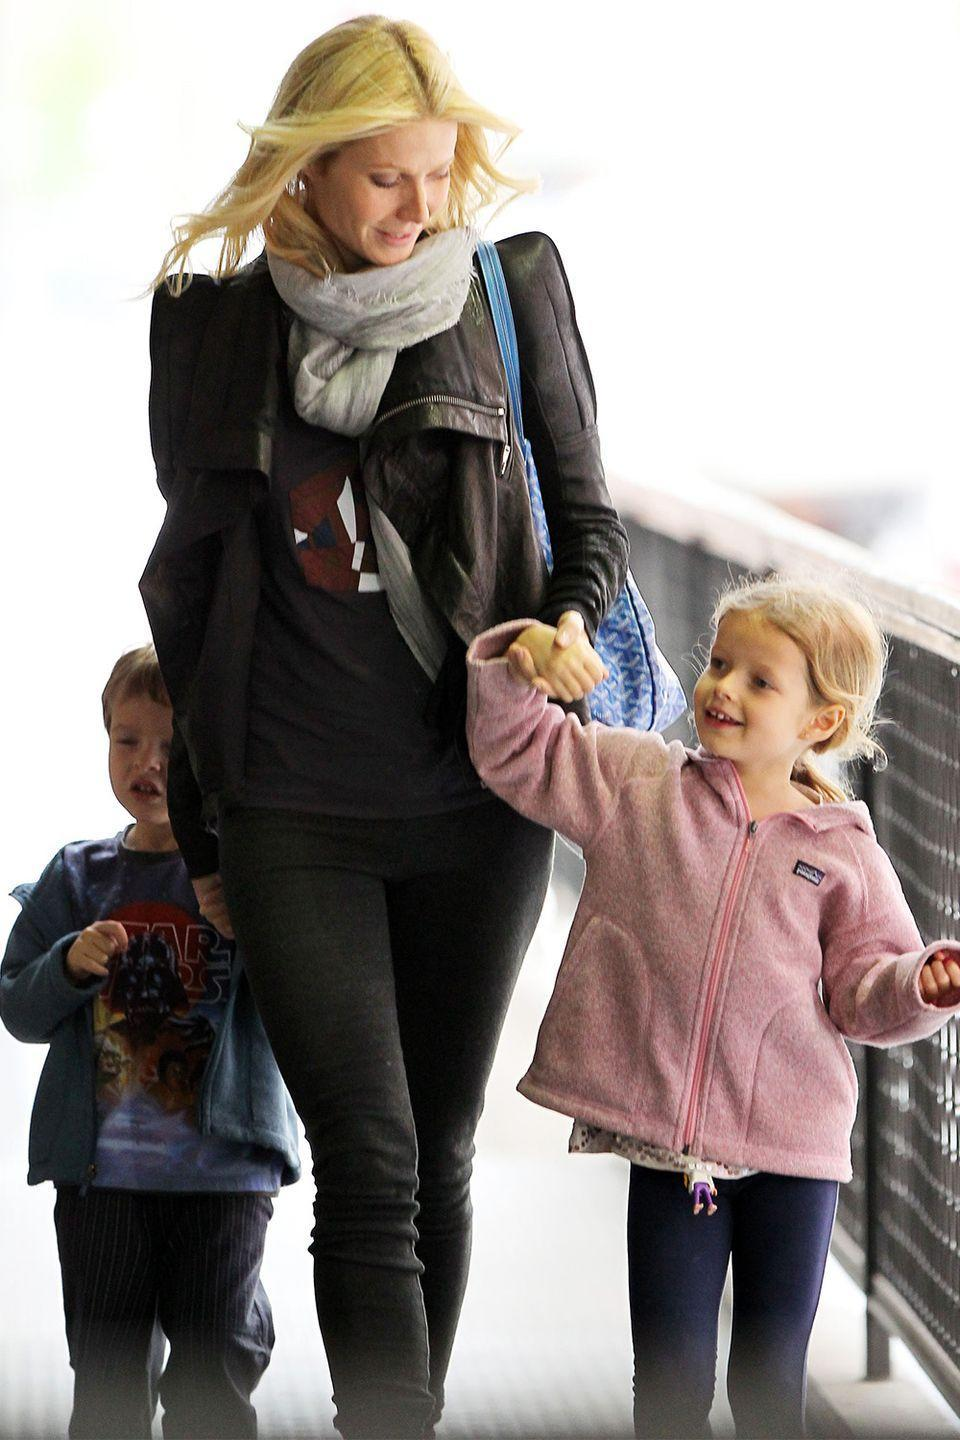 "<p>Apple Martin is the mini-me of her mother, actress Gwyneth Paltrow. <a href=""https://www.instagram.com/p/BoMiWcGnmkU/"" rel=""nofollow noopener"" target=""_blank"" data-ylk=""slk:Recent Instagram posts"" class=""link rapid-noclick-resp"">Recent Instagram posts</a> show the two looking even more alike as time goes on. </p>"